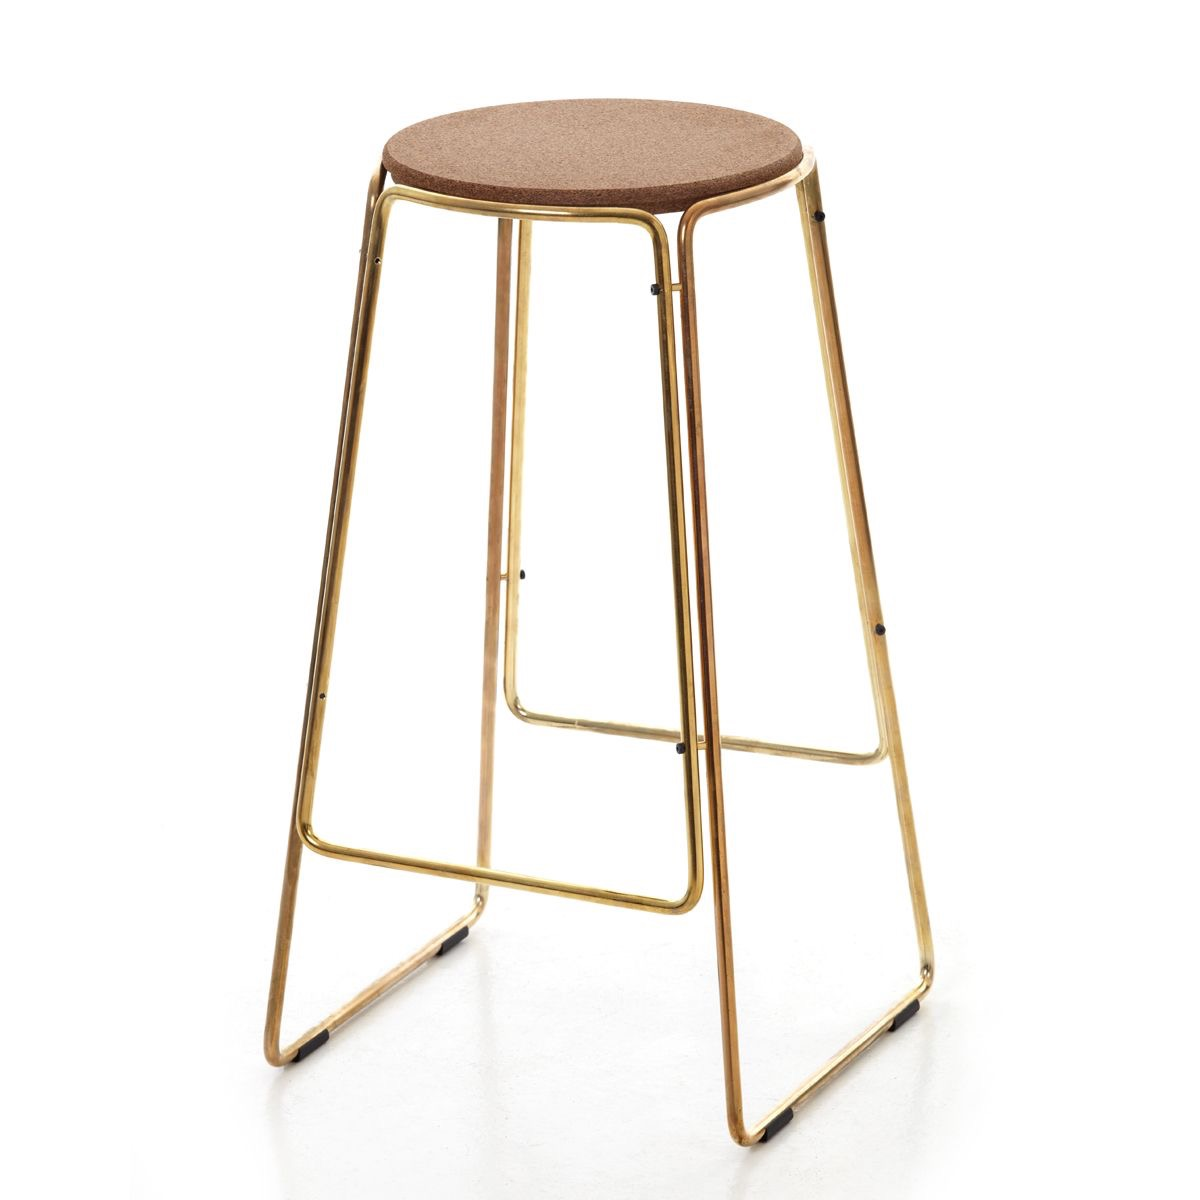 Smed stool in  brass. Available from Great Dane.